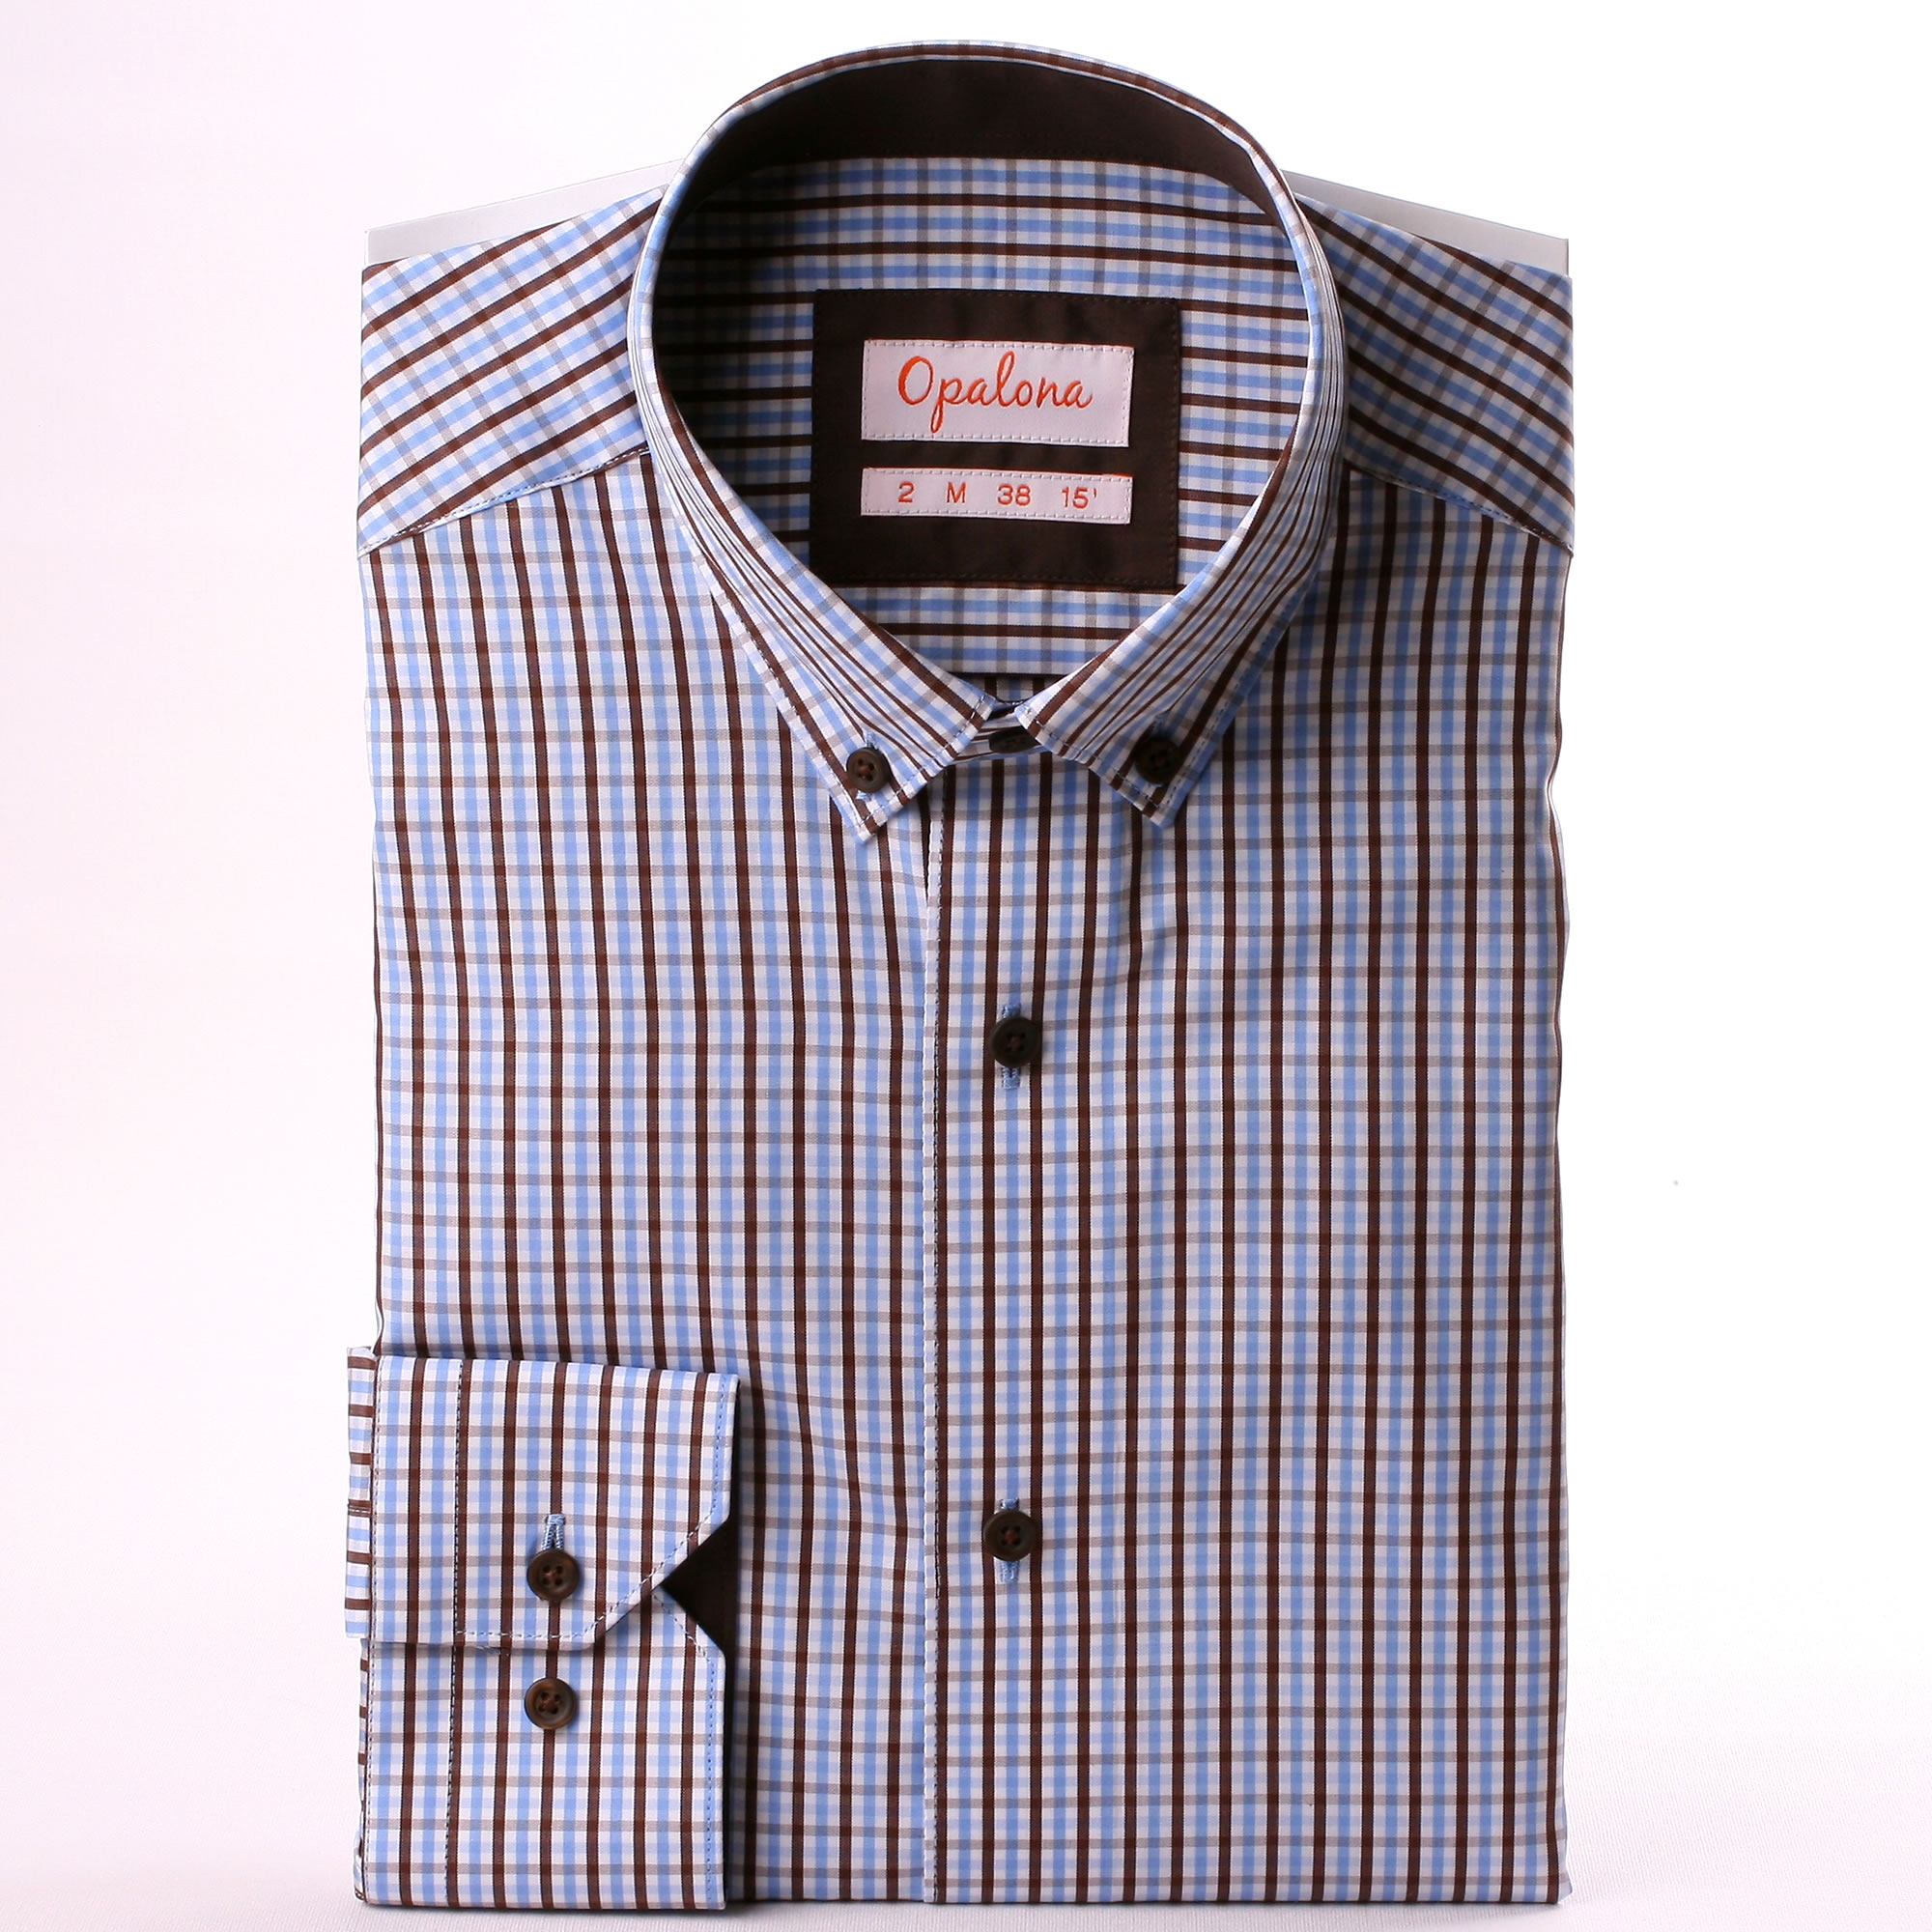 blue brown and white gingham shirt with brown collar and